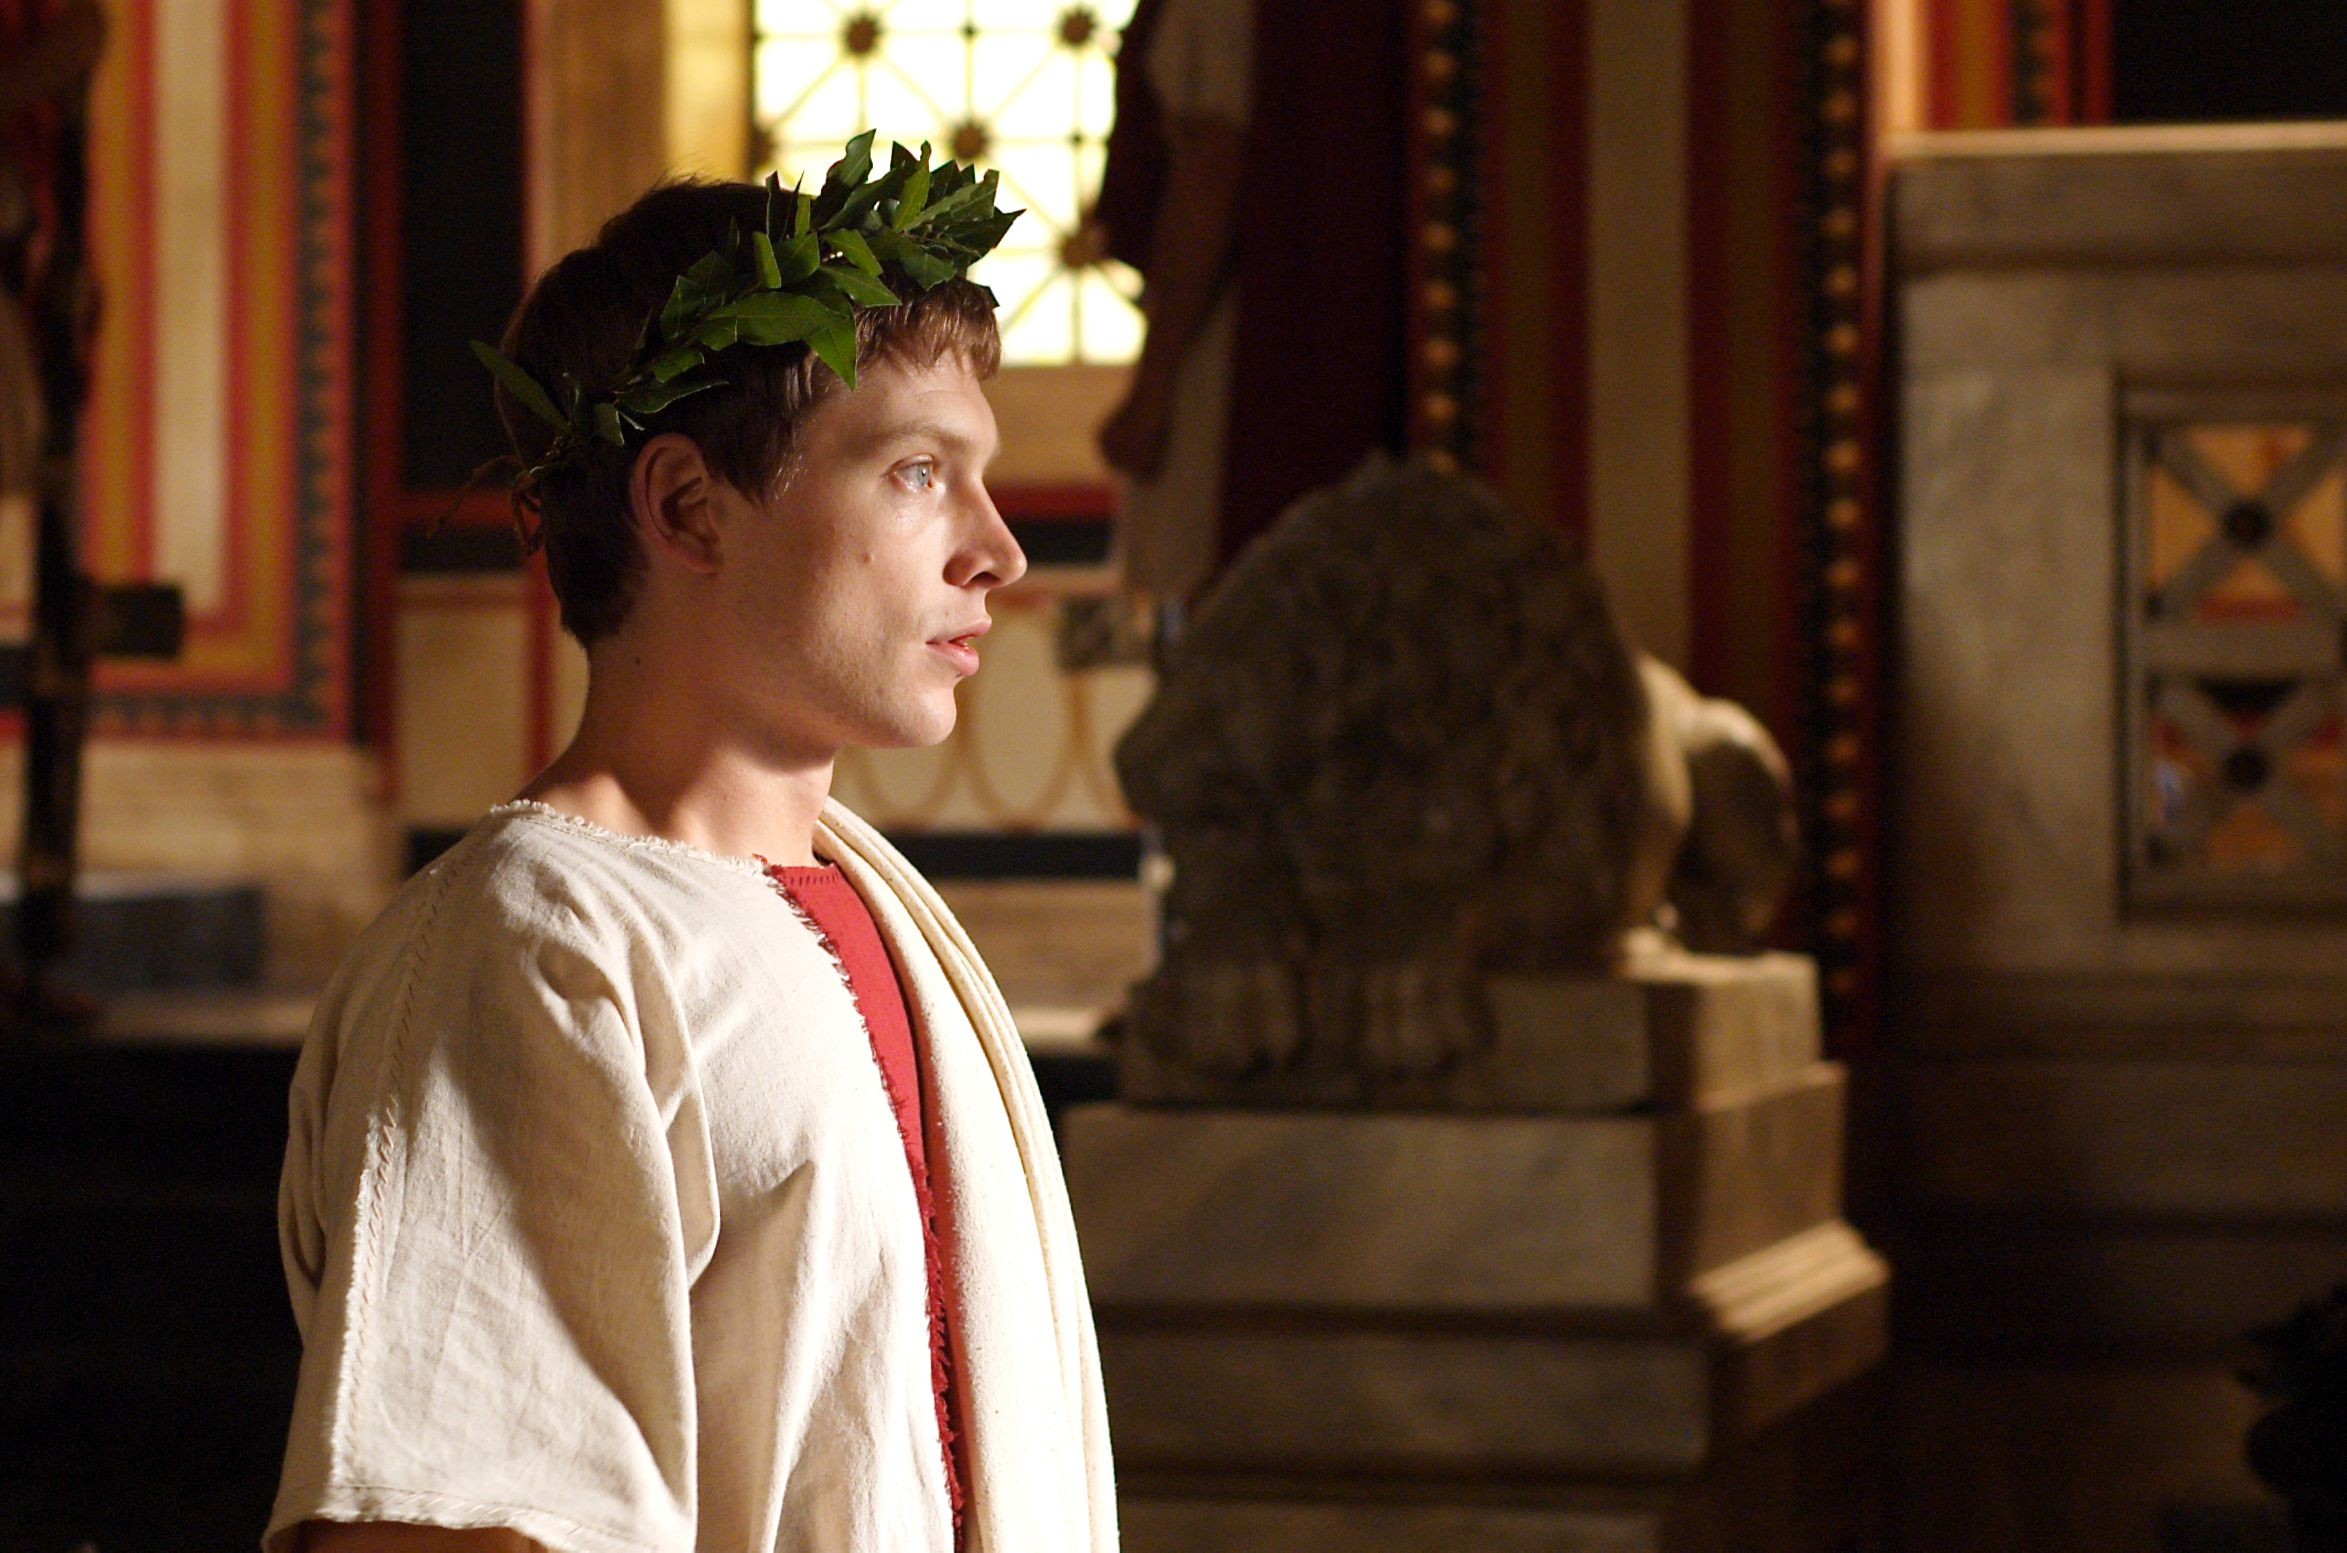 Rome TV Series - Season 2 Episode 5 Still | ROME | Rome tv series